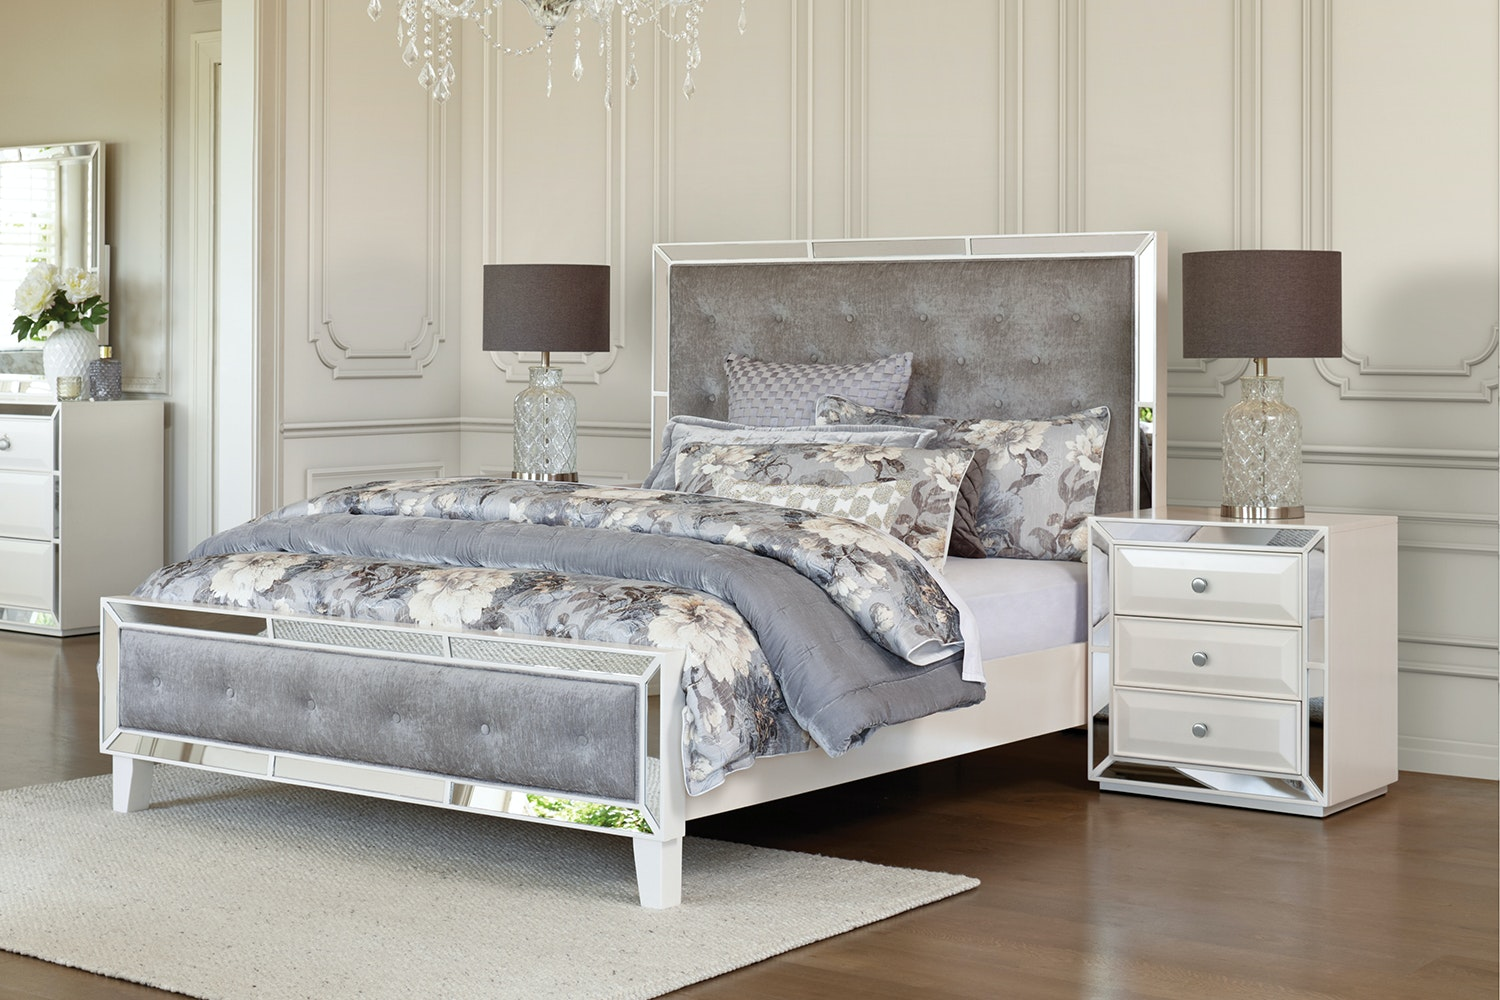 Majestic Queen Bed Frame